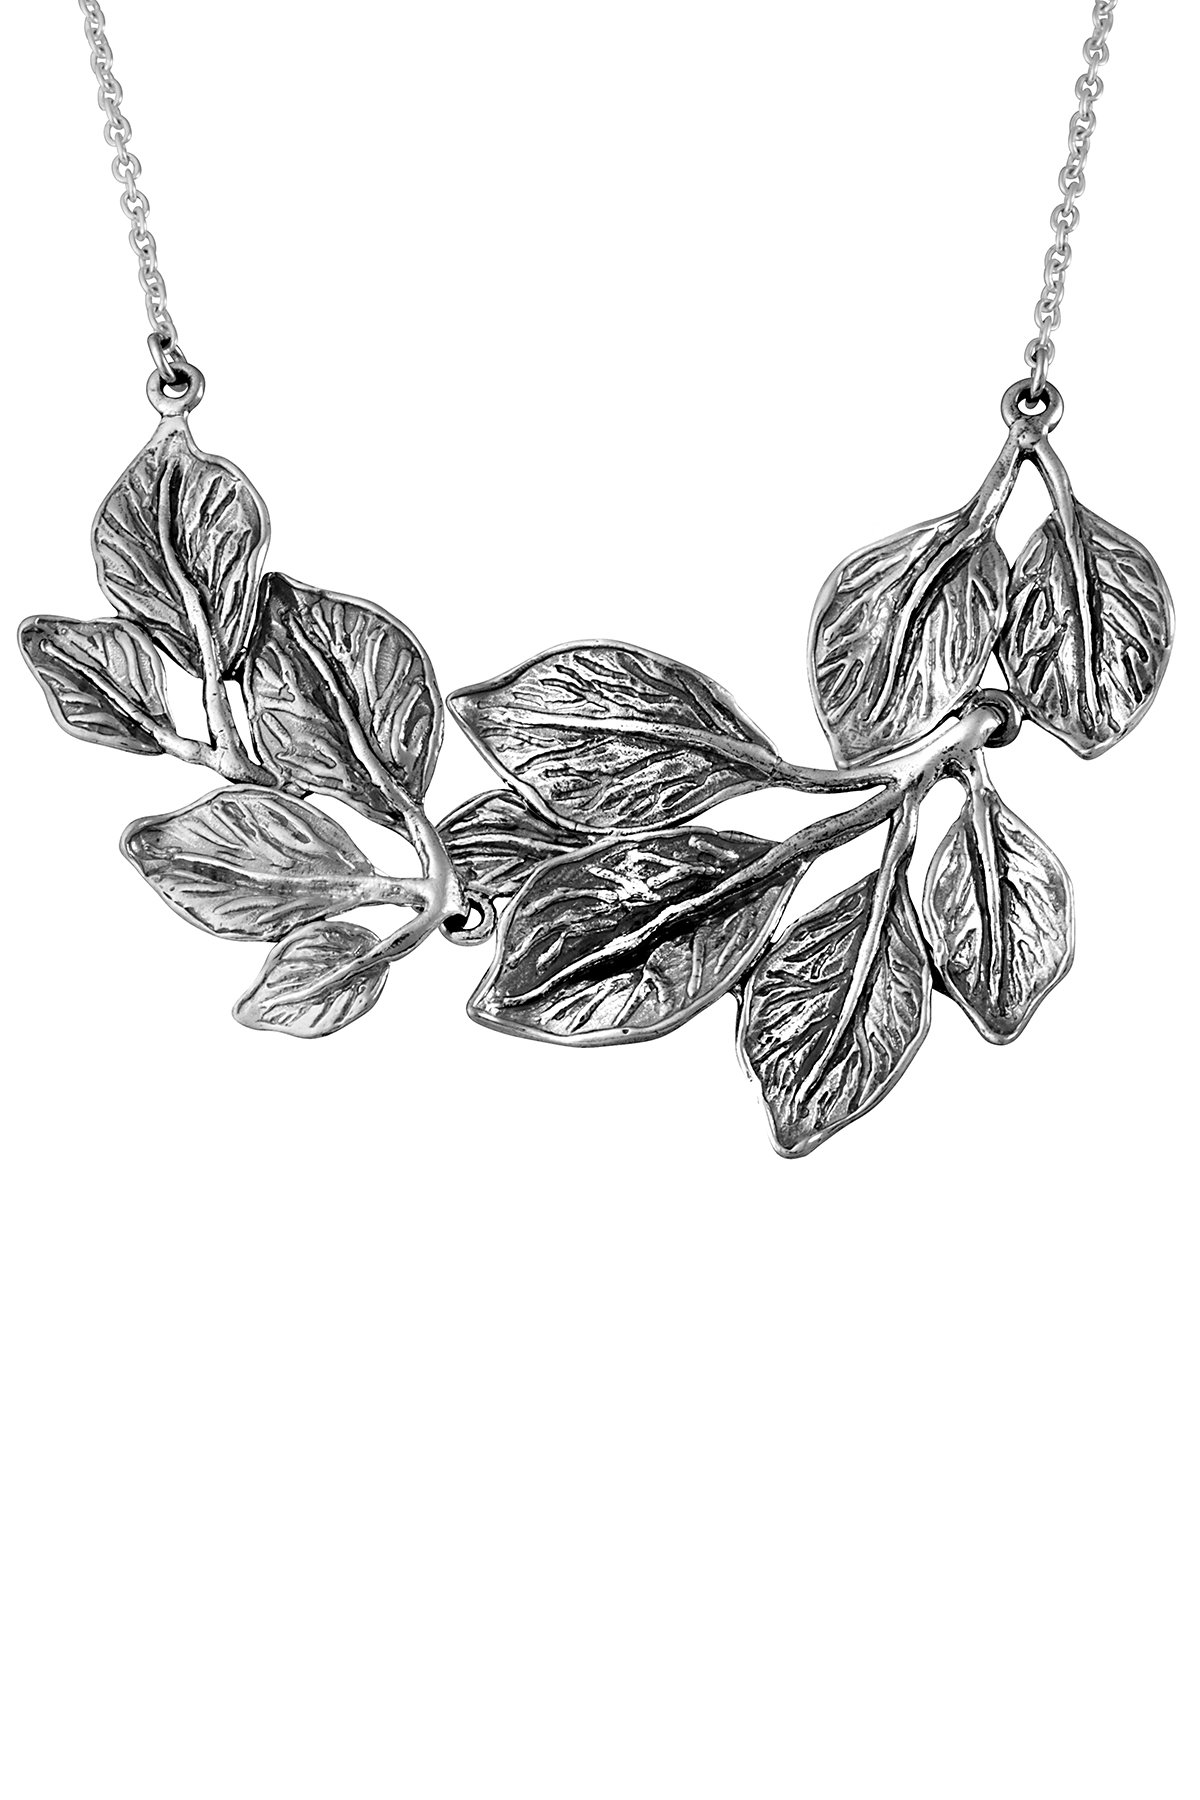 Paz Creations .925 Sterling Silver Floral Necklace, Made in Israel